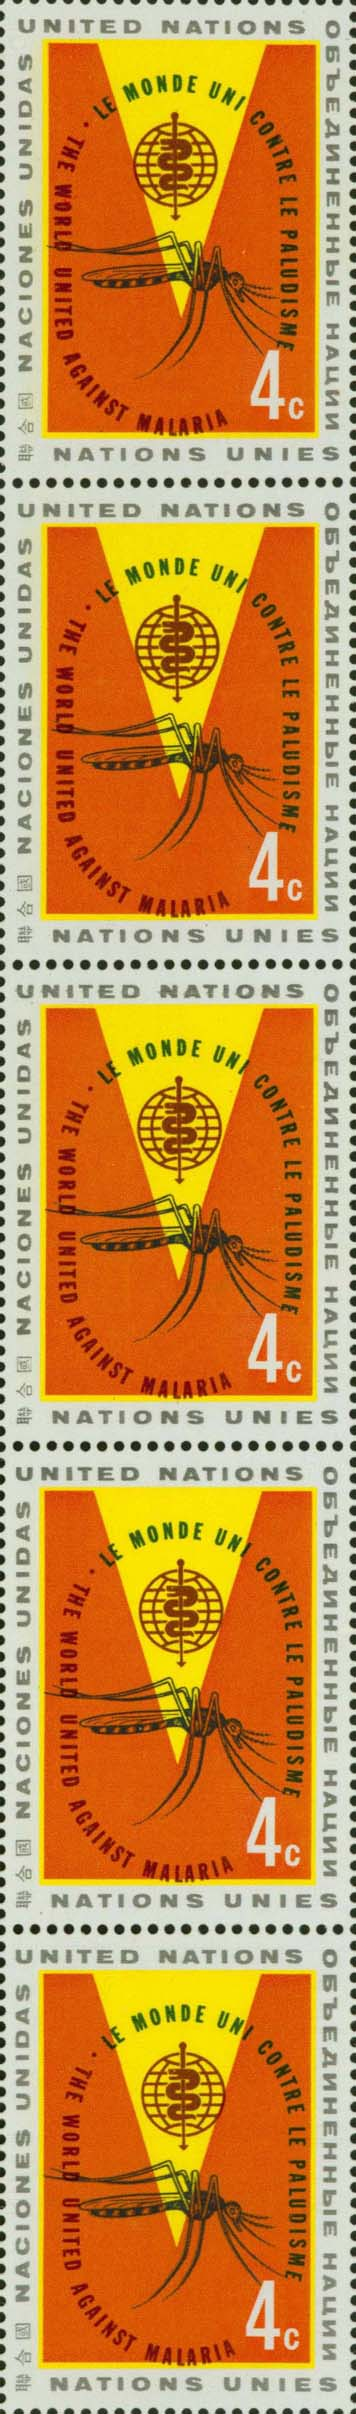 Image of the stamp